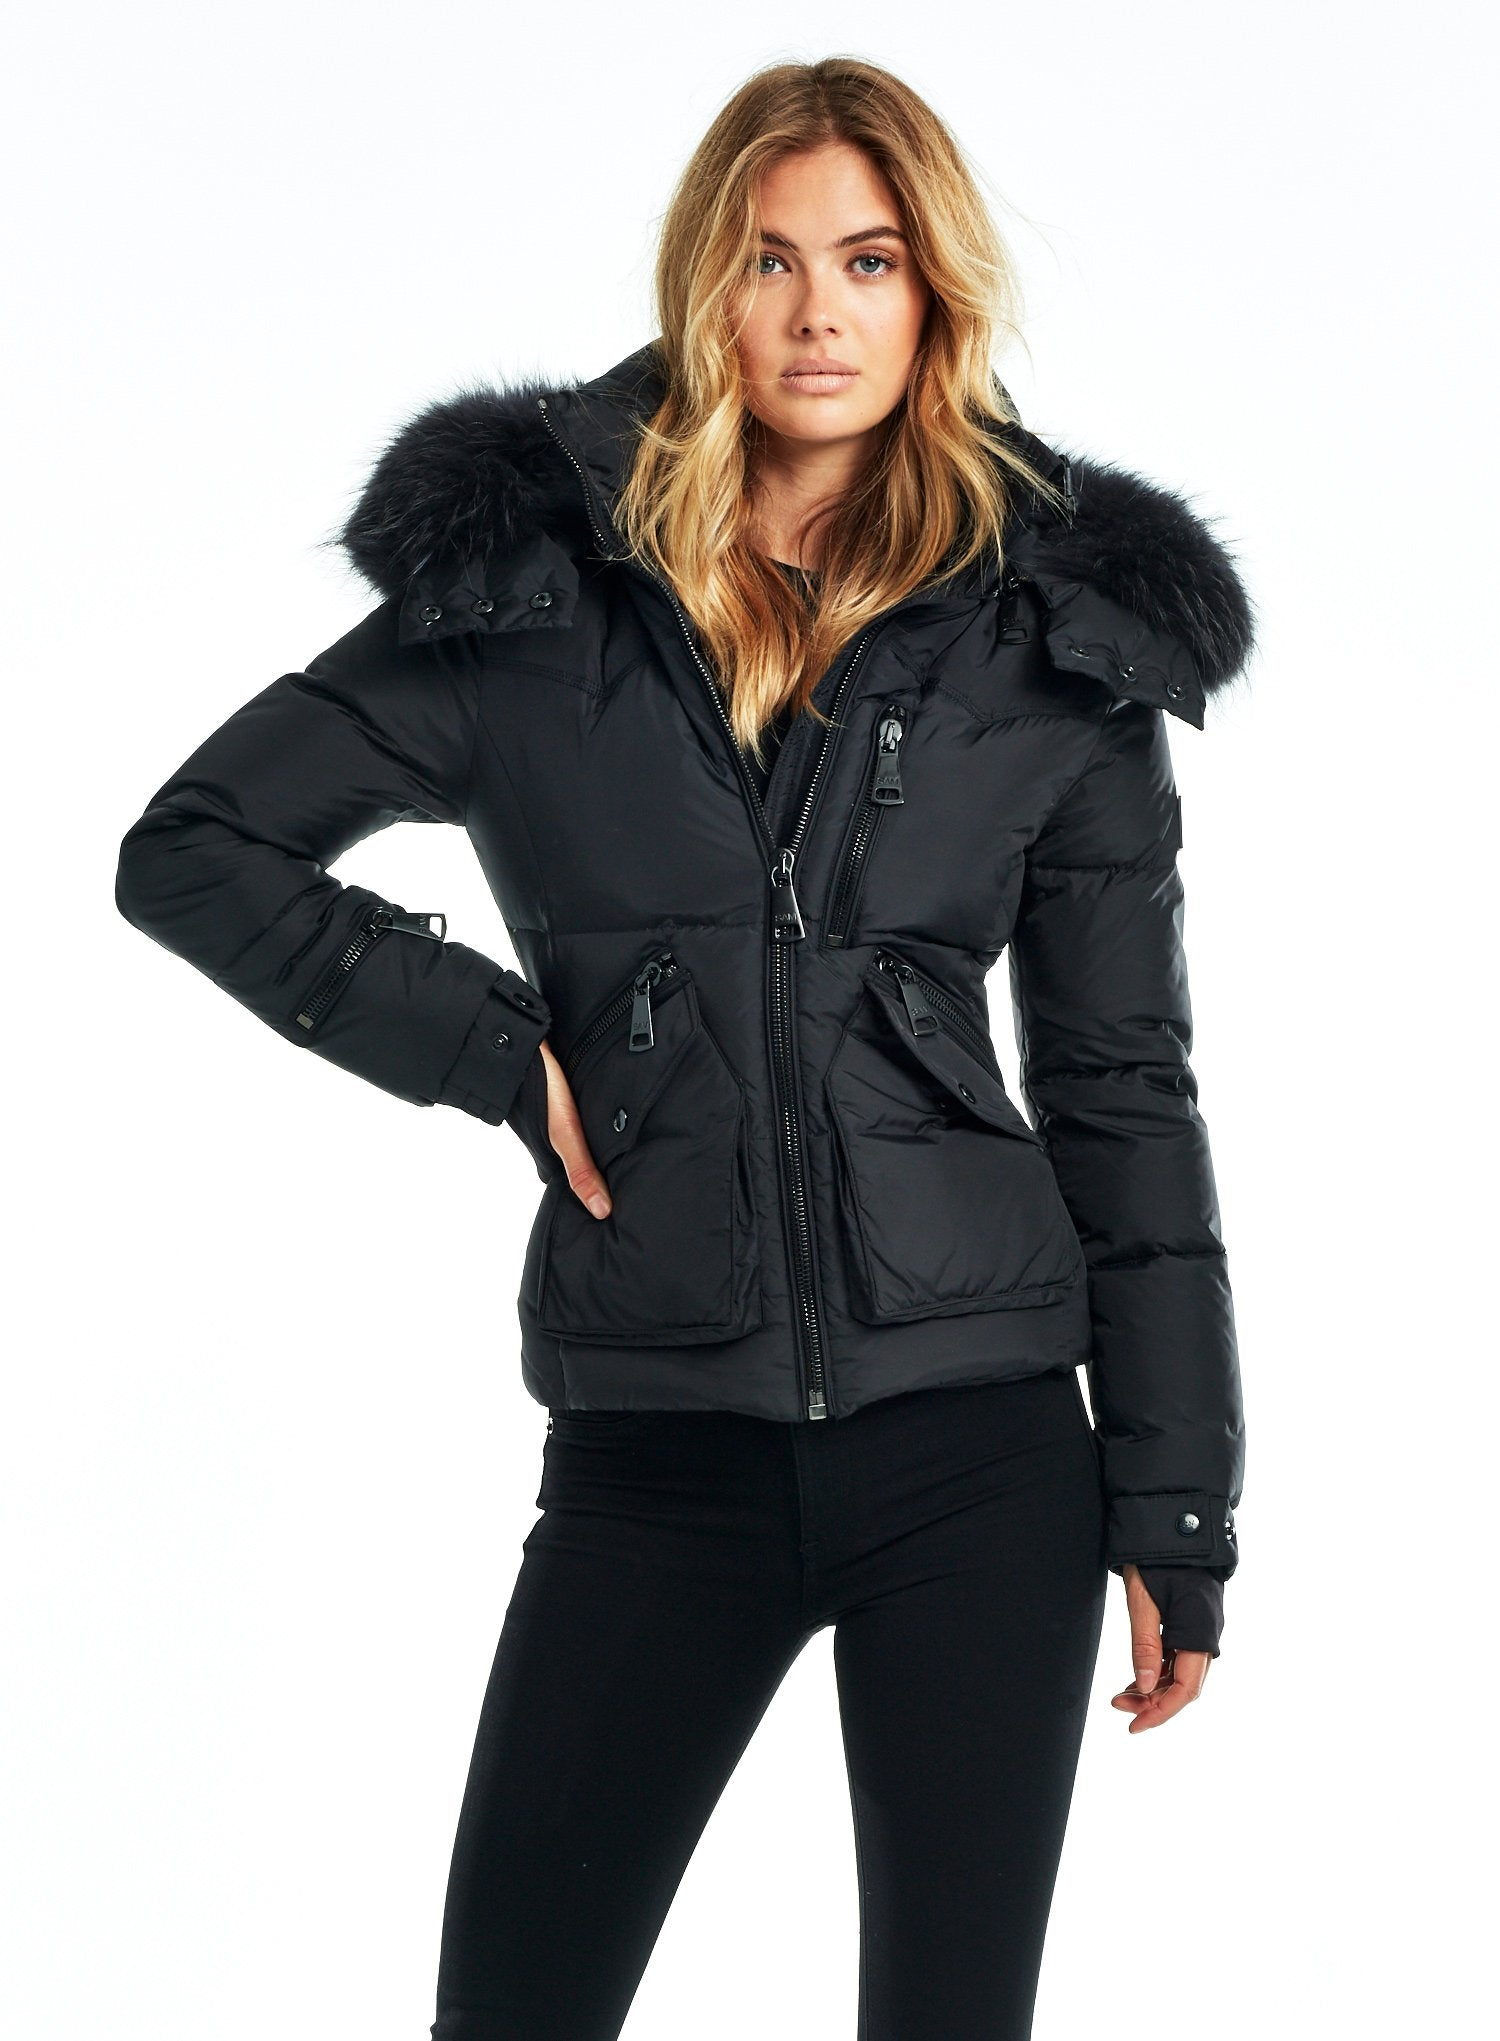 FUR JETSET FUR JETSET - SAM. New York Sam nyc jacket